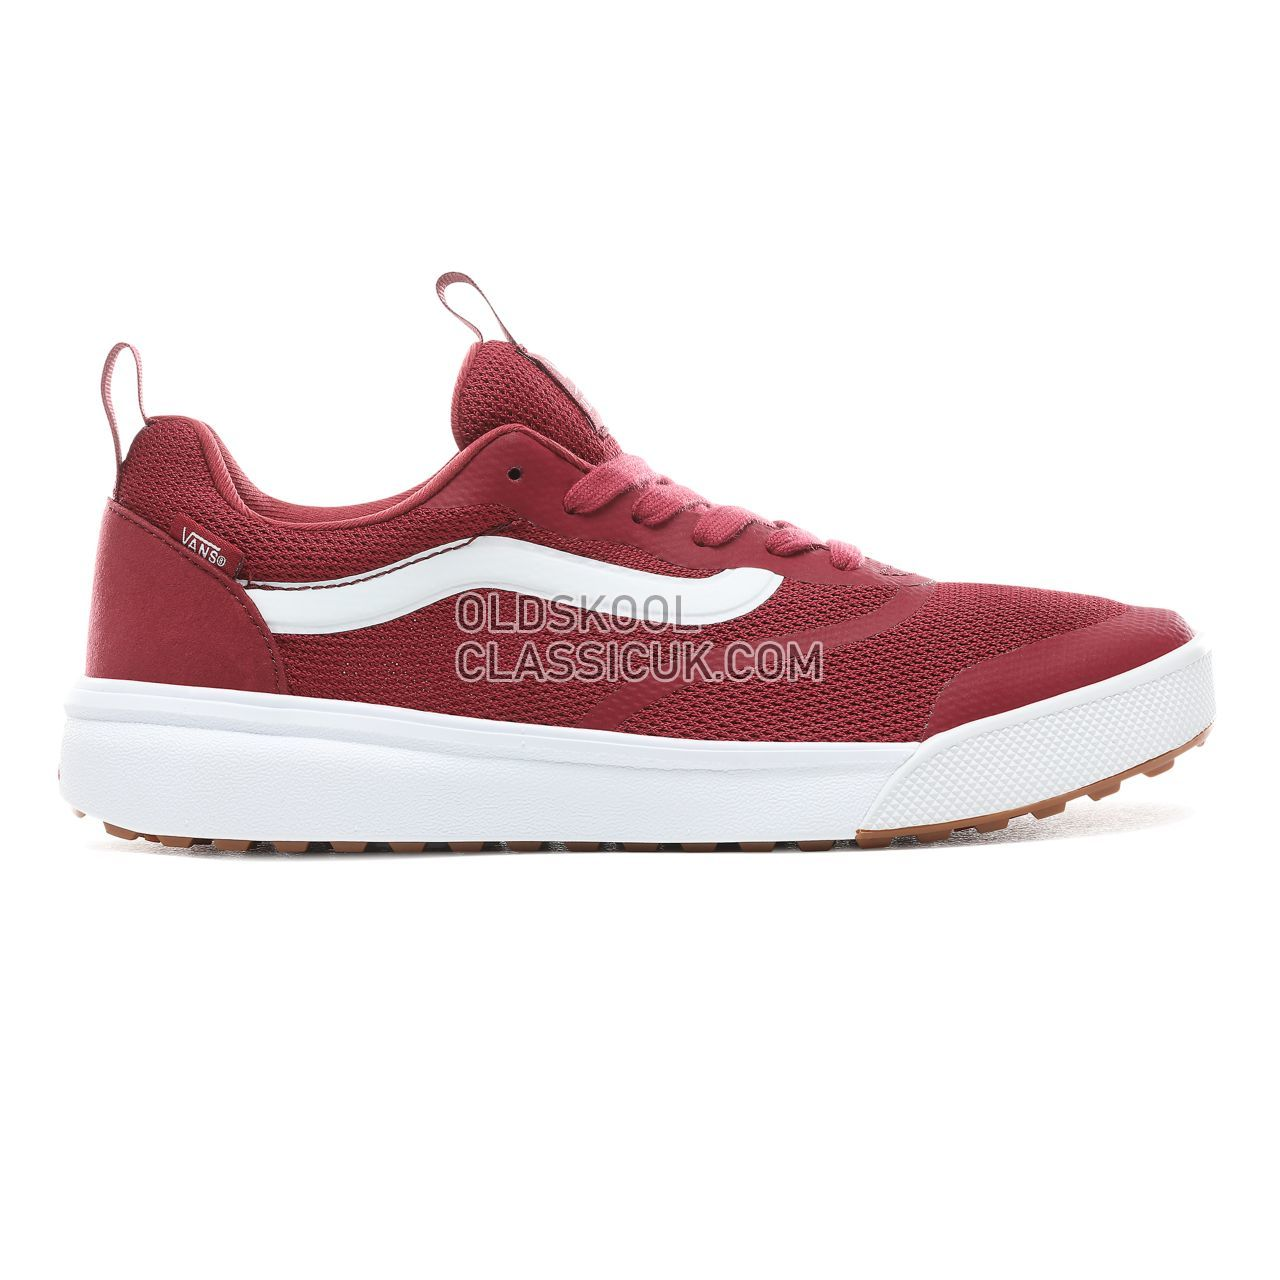 Vans Ultrarange Rapidweld Sneakers Mens Rumba Red/True White VN0A3MVUVG4 Shoes